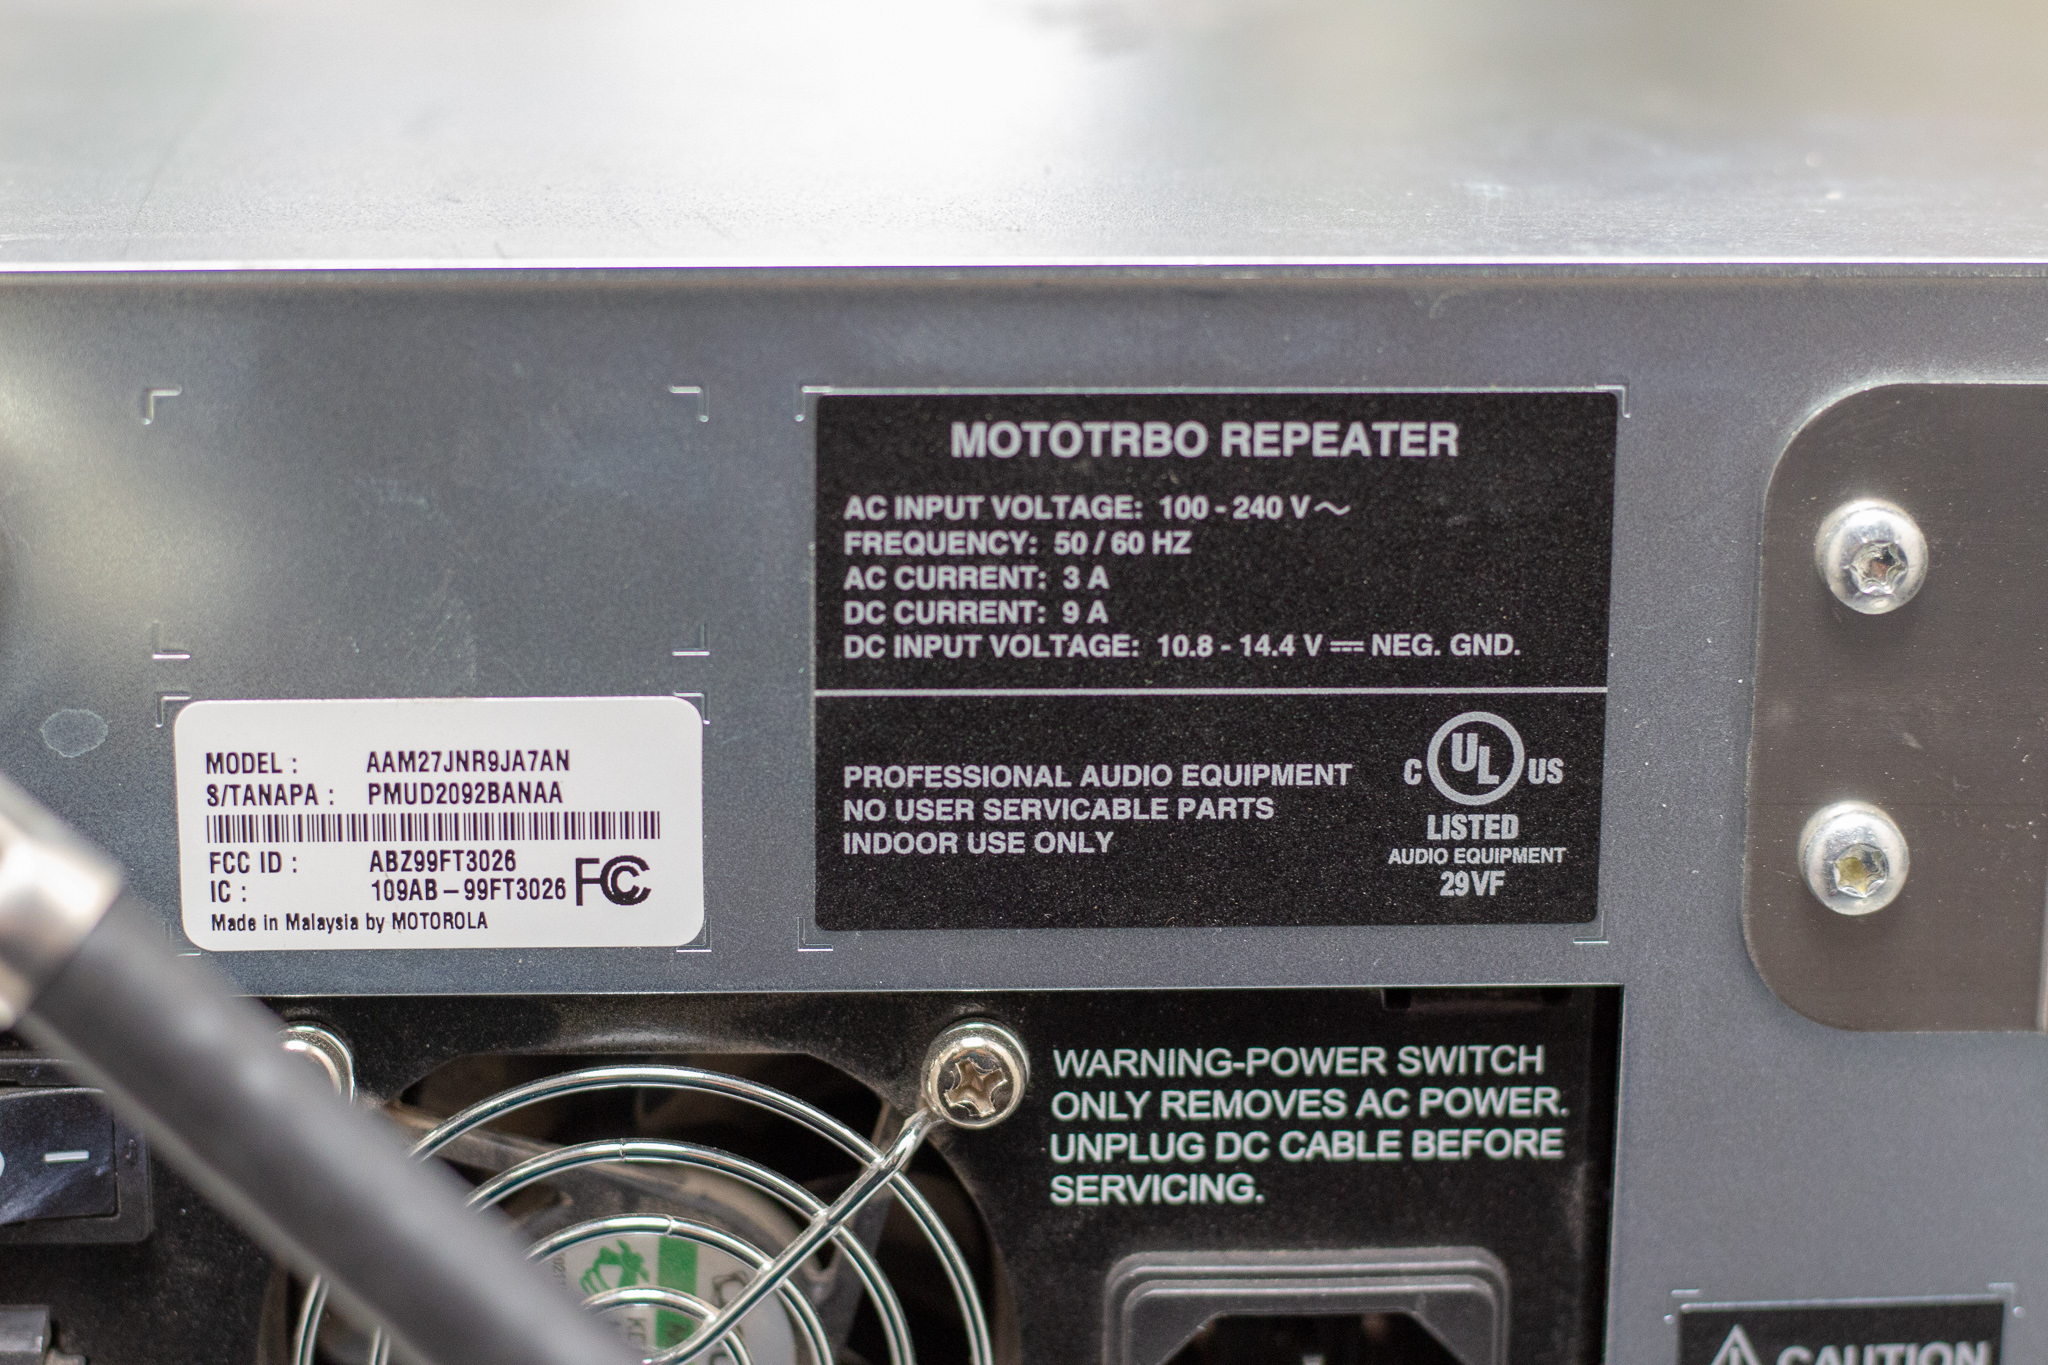 Motorola XPR 8300 Repeater and Sinclair Q202GC 4 Cavity